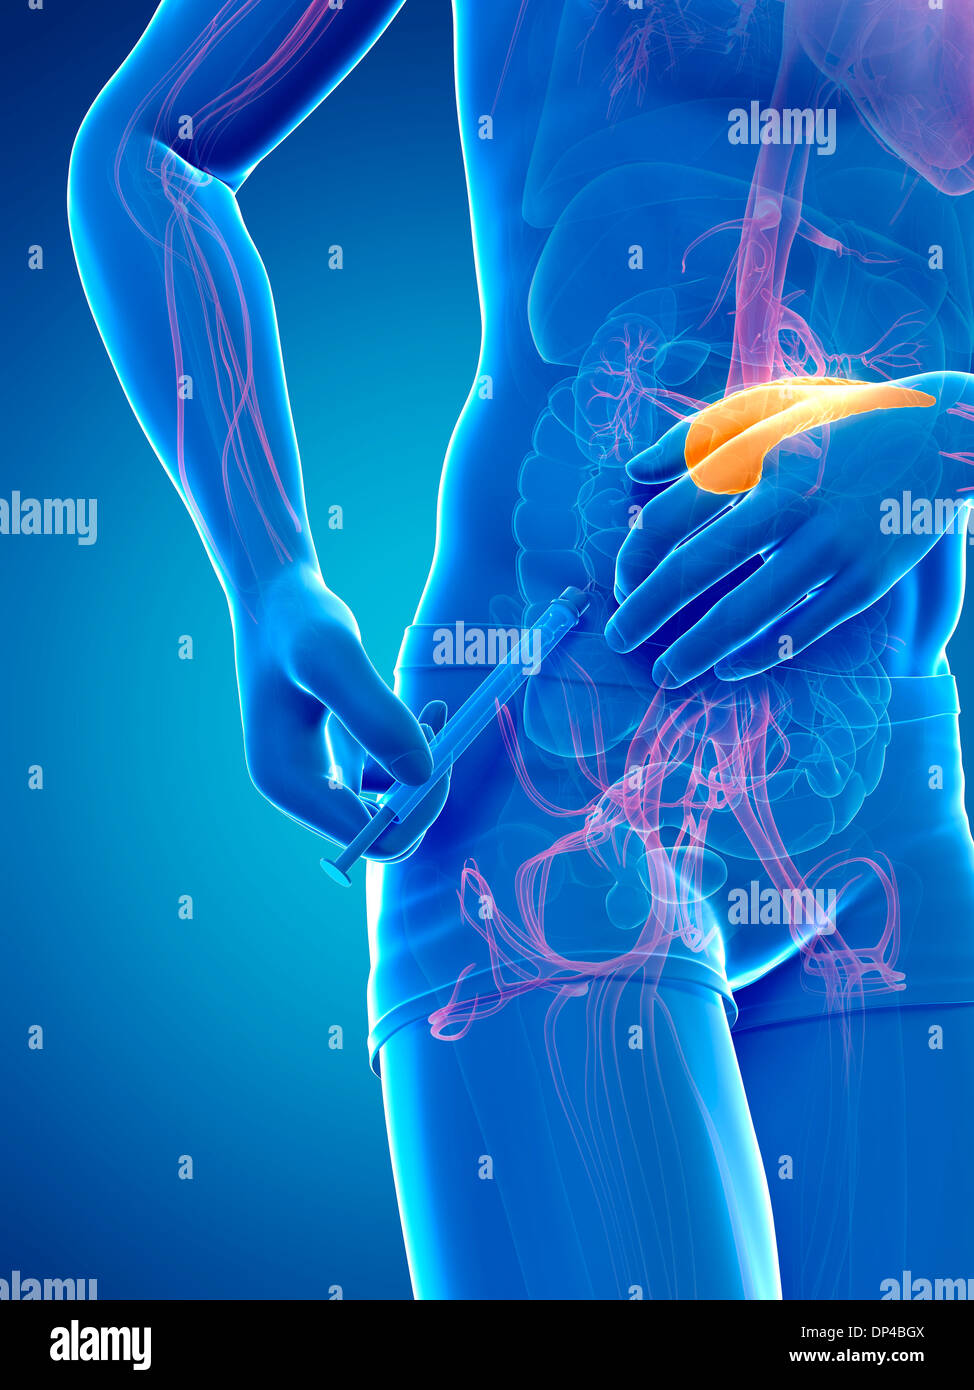 Insulin injection, artwork - Stock Image